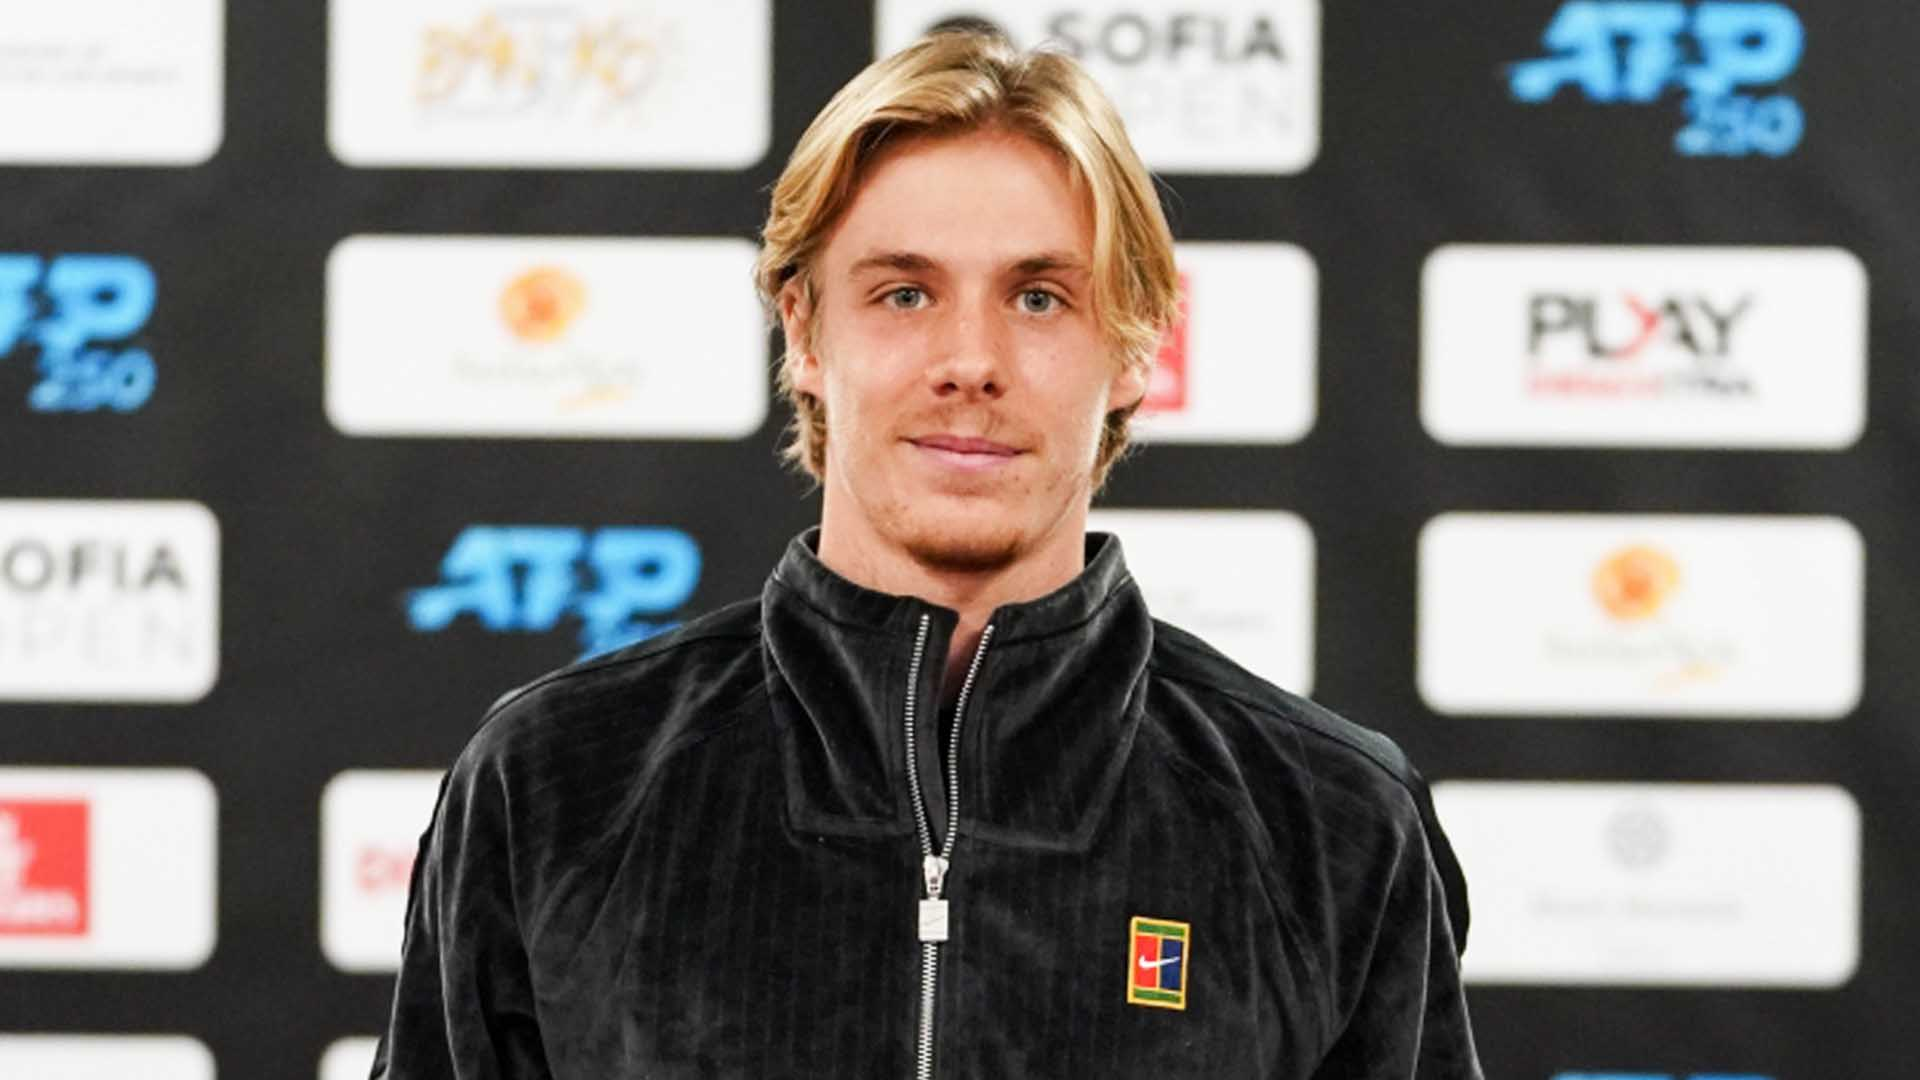 Denis Shapovalov owns a 17-14 record in 2020.